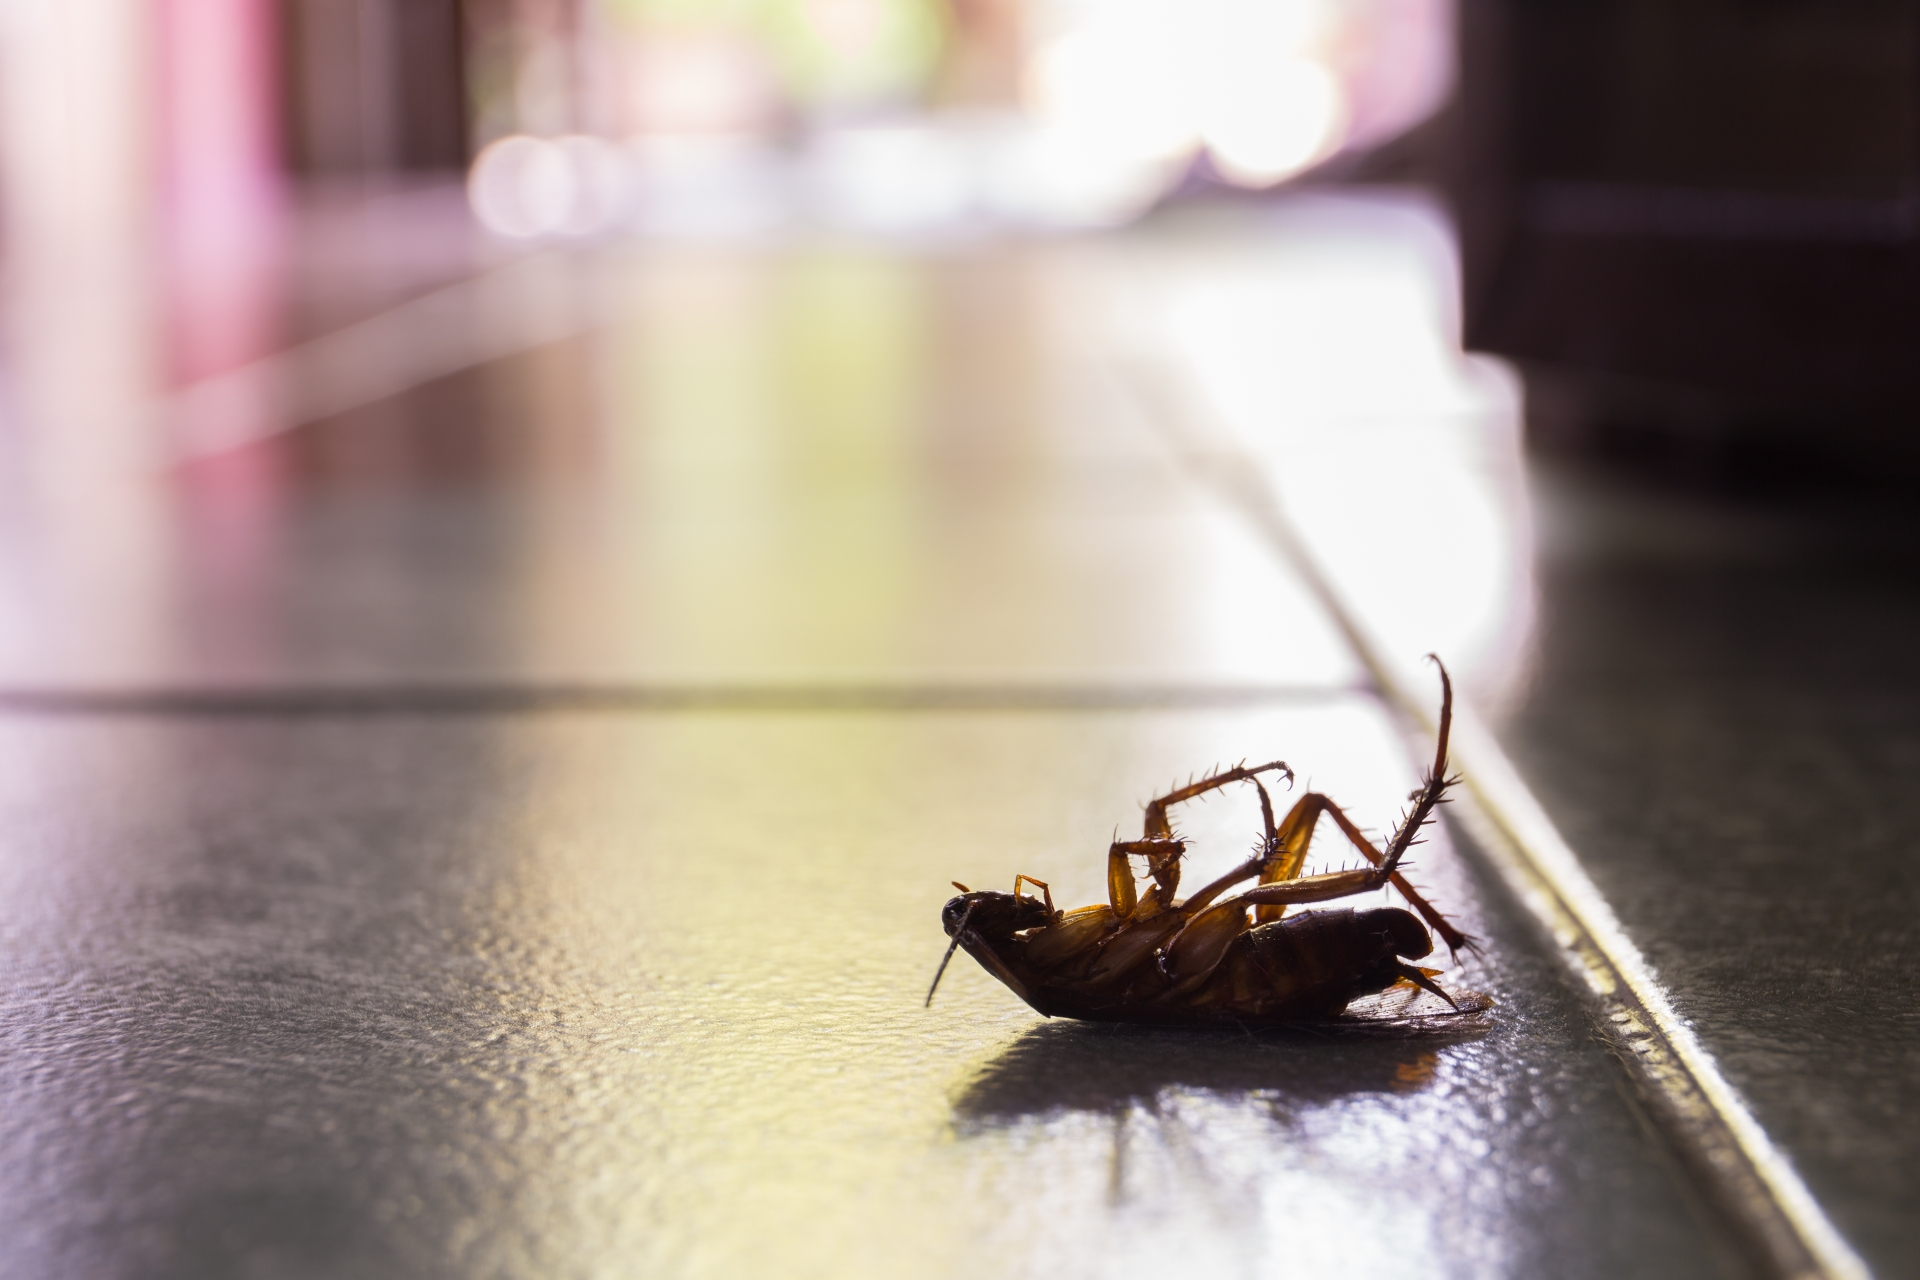 Cockroach Control, Pest Control in Peckham, Nunhead, SE15. Call Now 020 8166 9746